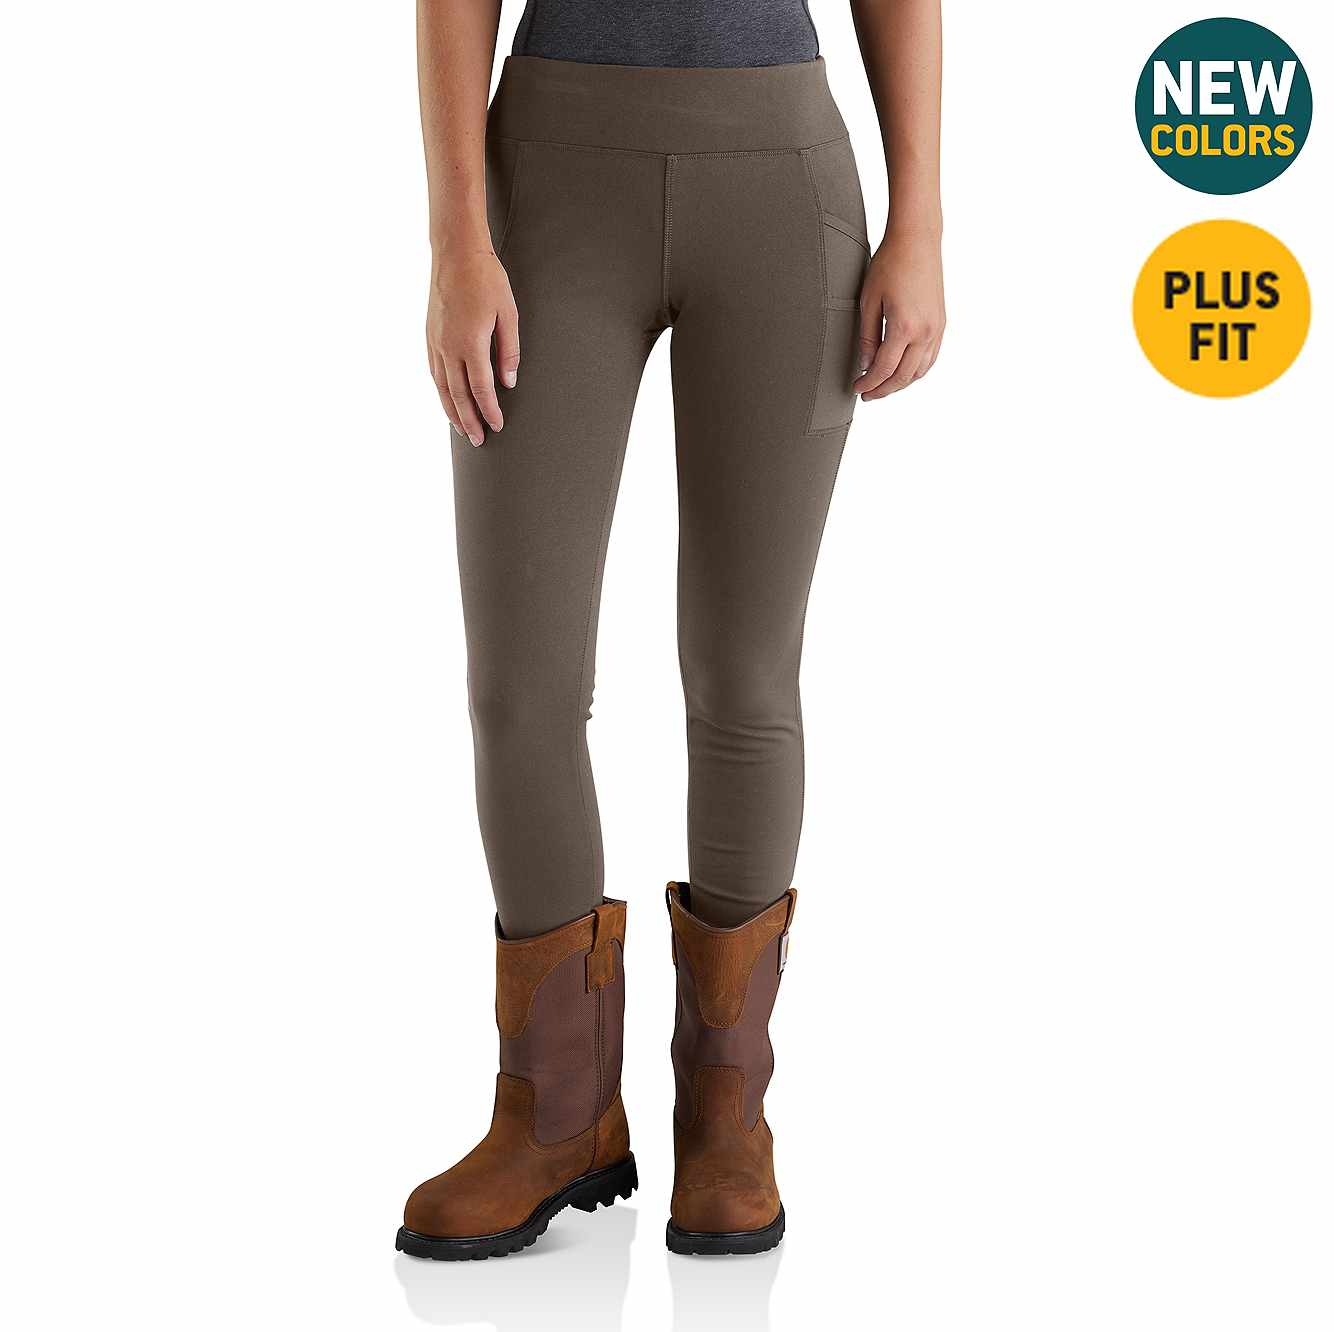 Picture of Carhartt Force Lightweight Utility Legging in Tarmac